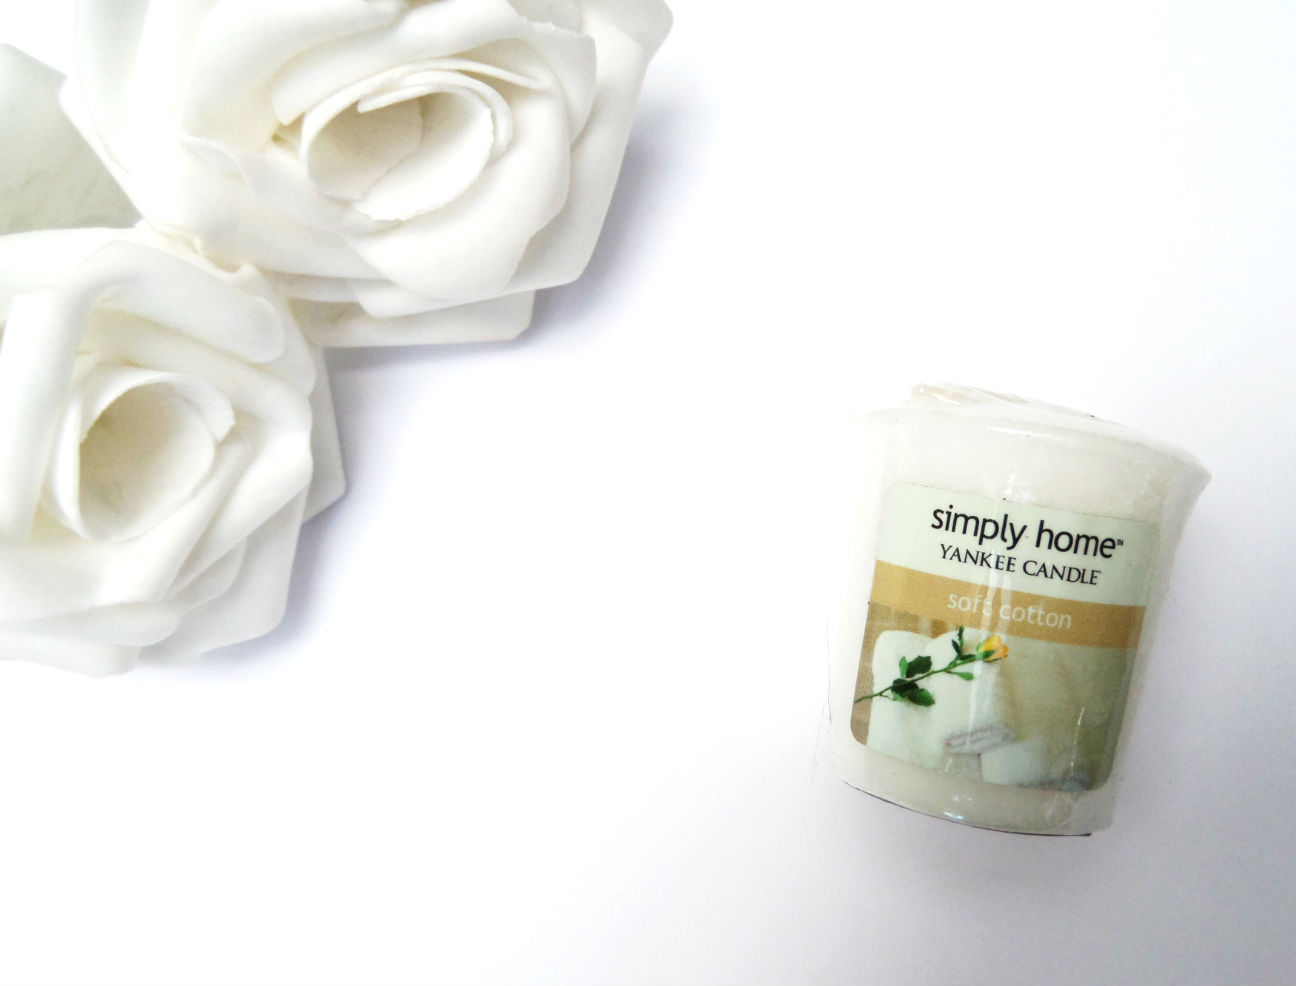 Yankee Candle Simply Home Soft Cotton Review